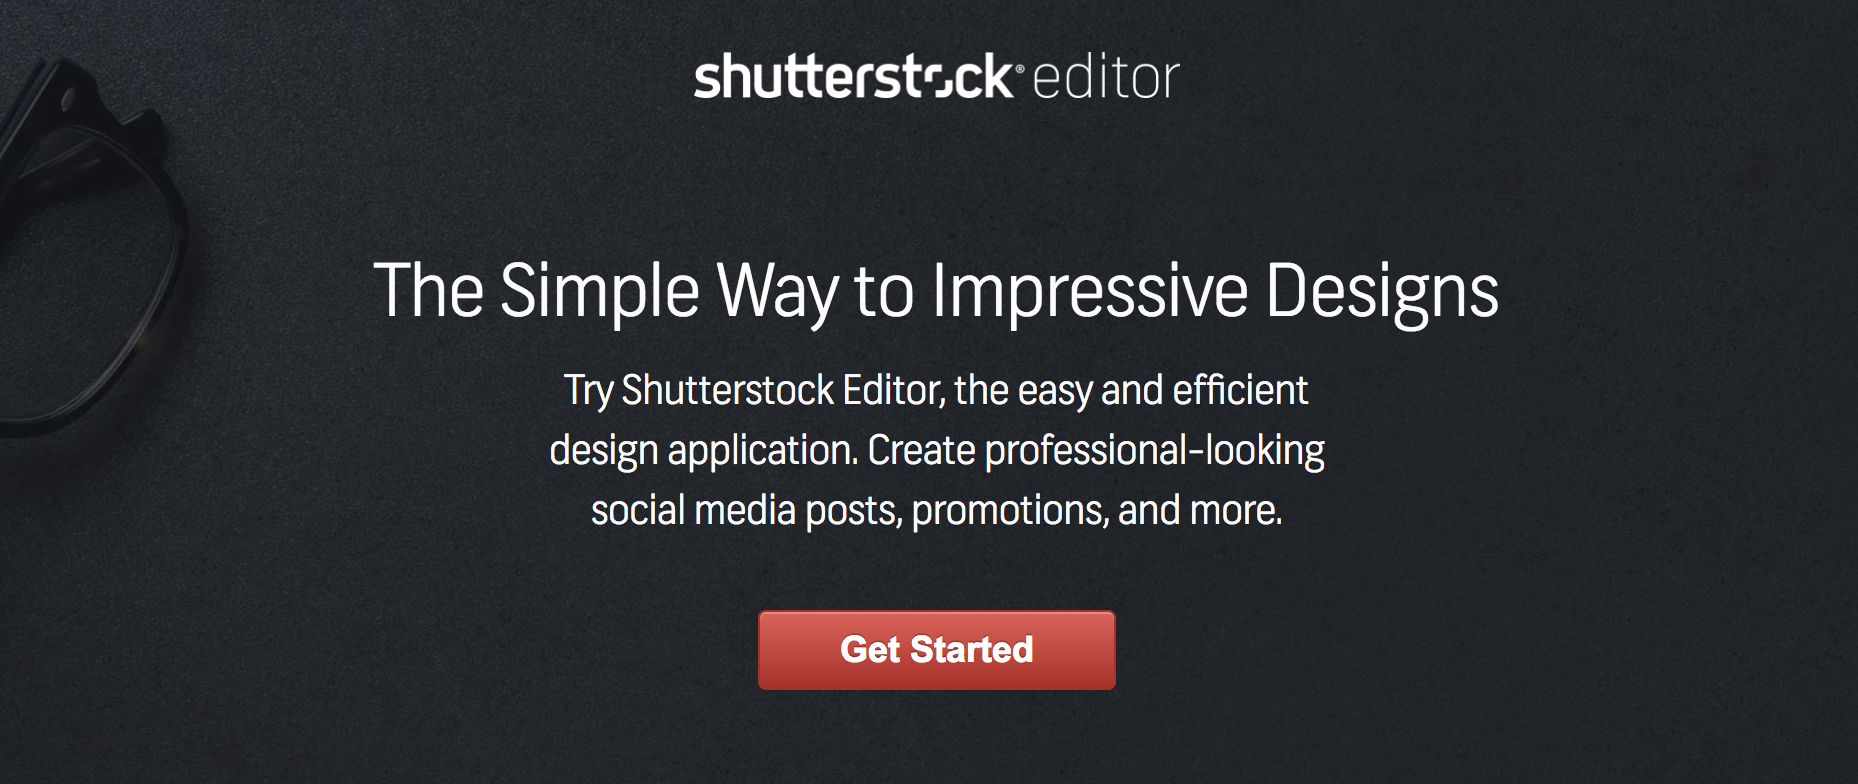 shutterstock editor for photos and designs